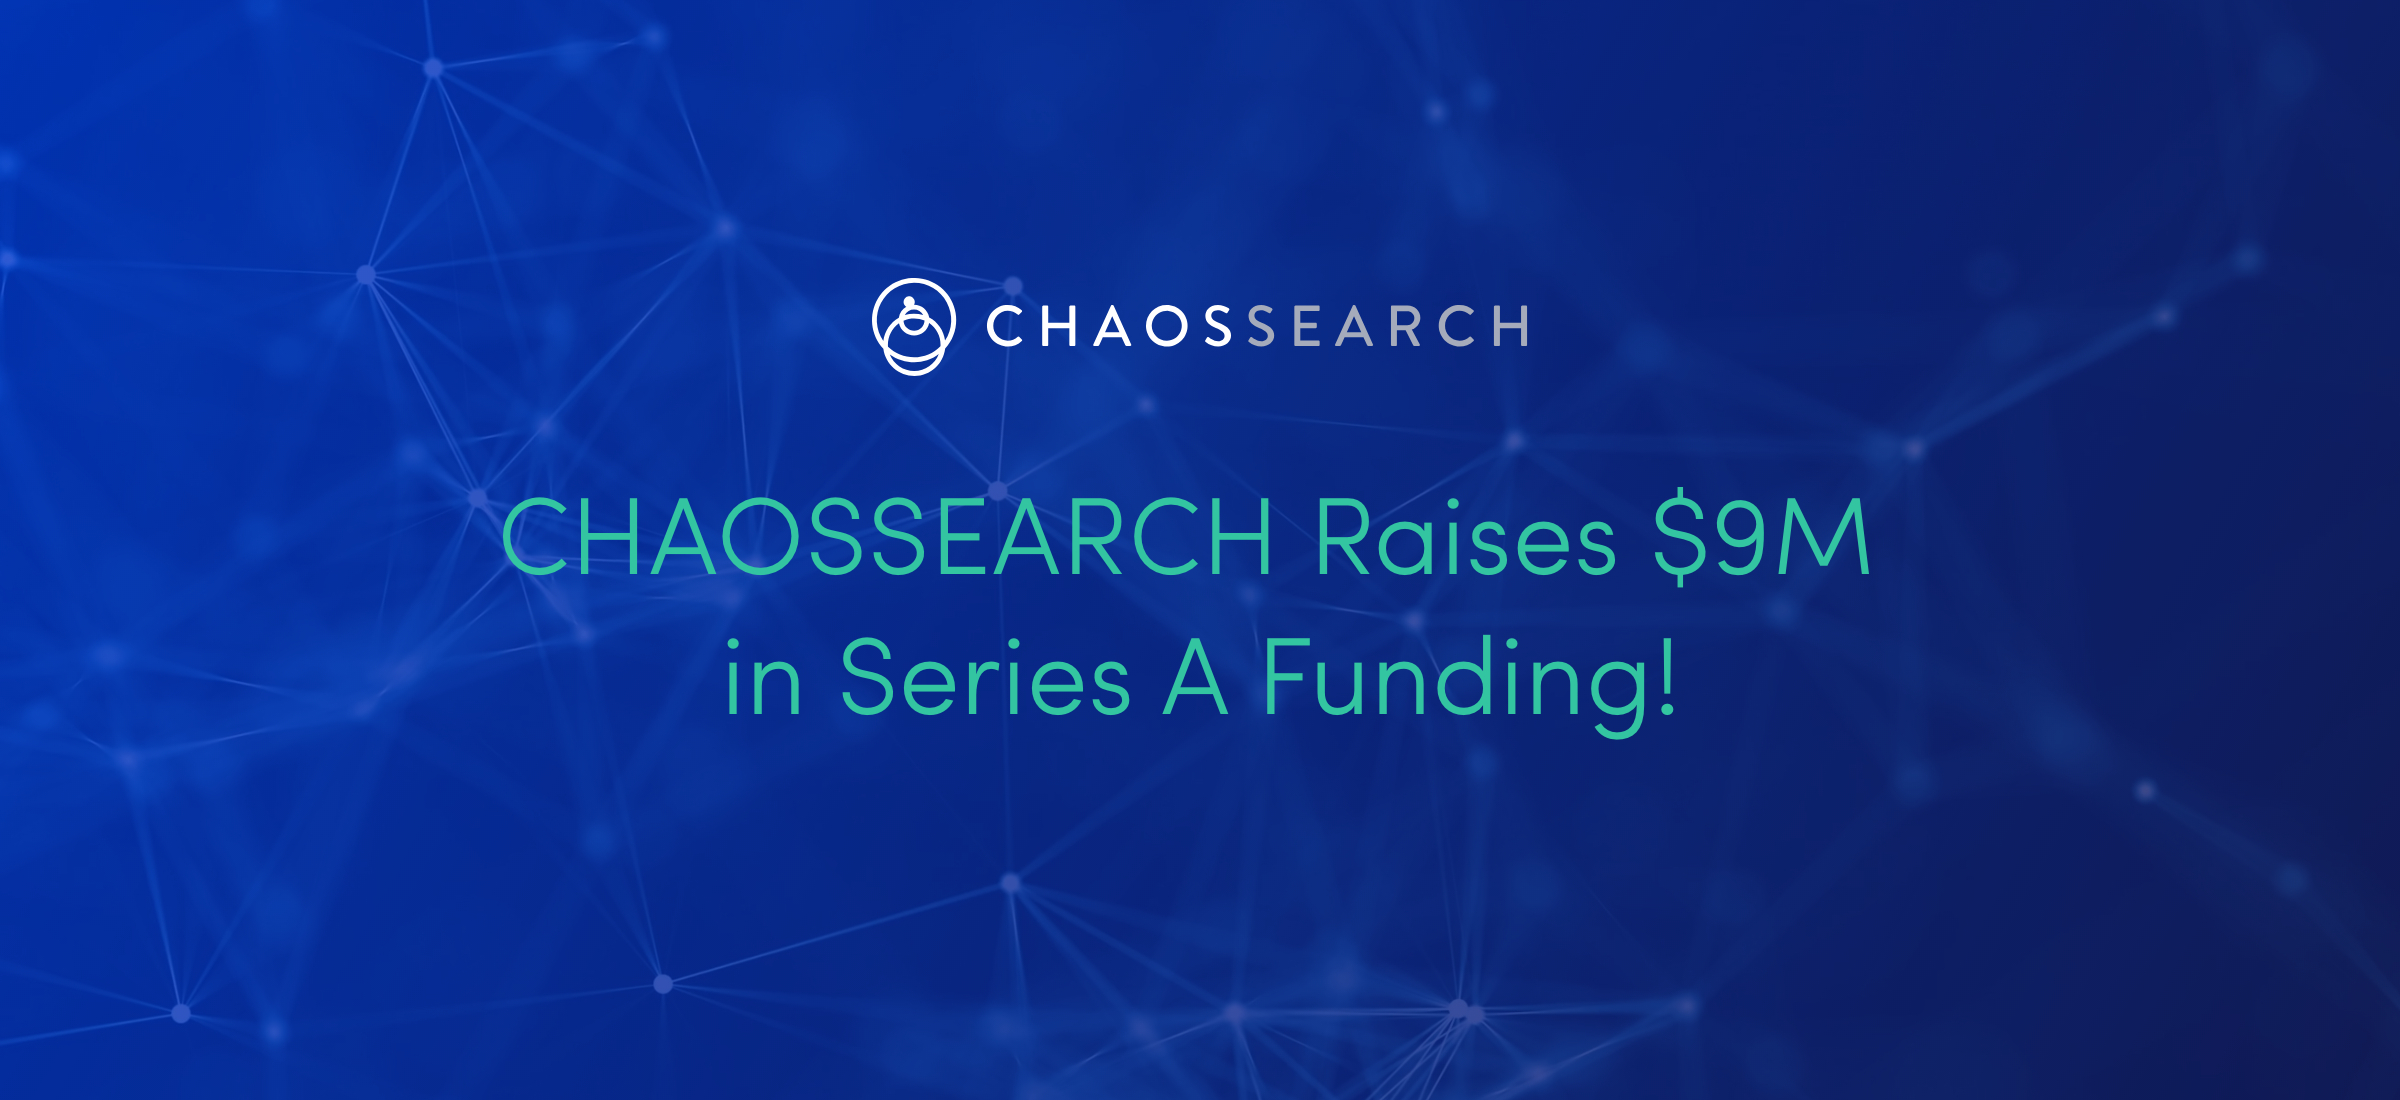 CHAOSSEARCH Raises Series A Funding!